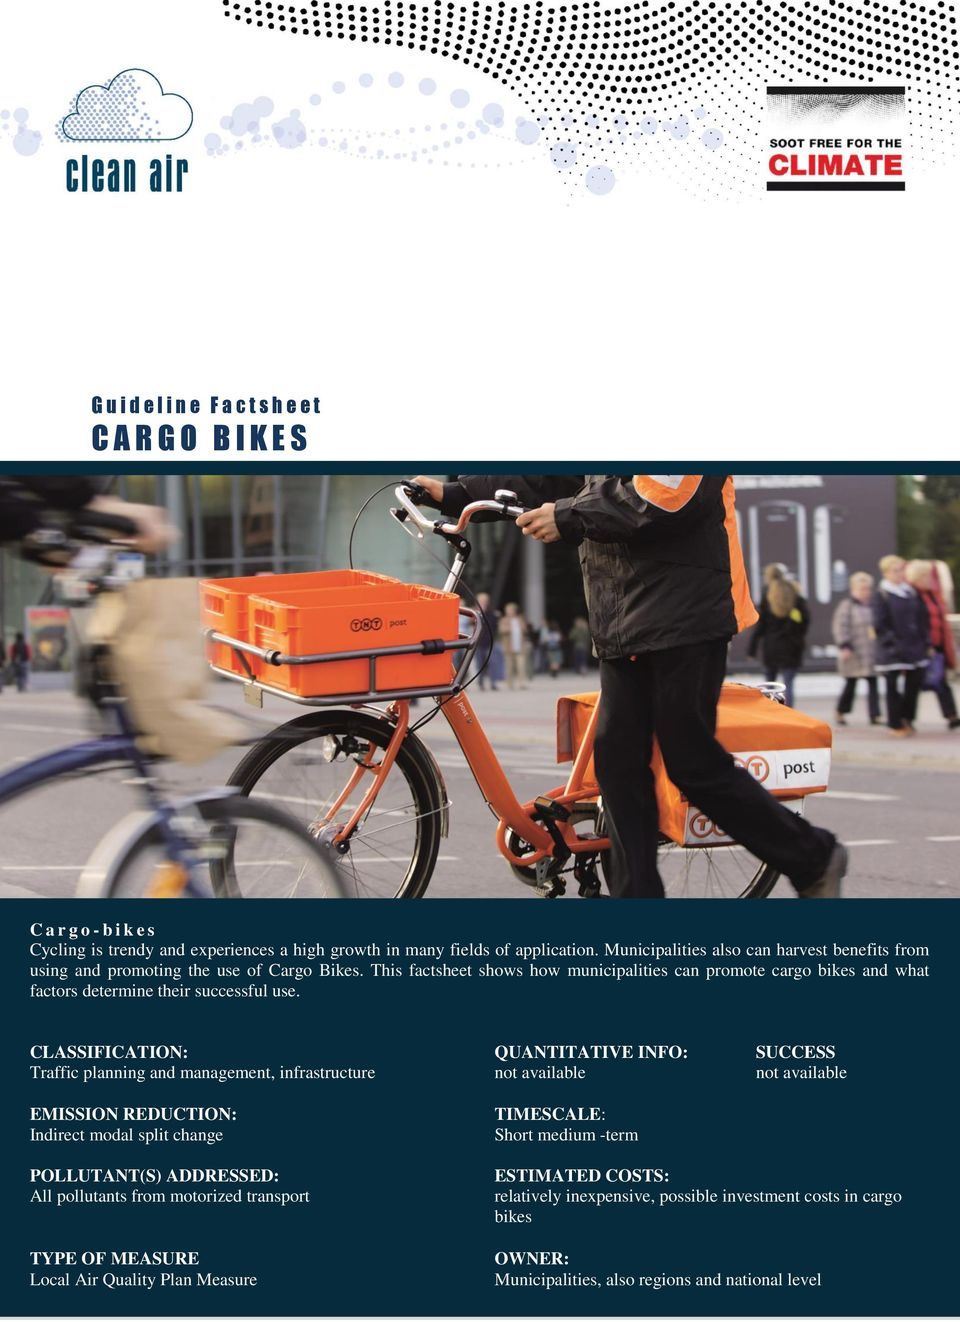 This factsheet shows how municipalities can promote cargo bikes and what factors determine their successful use.